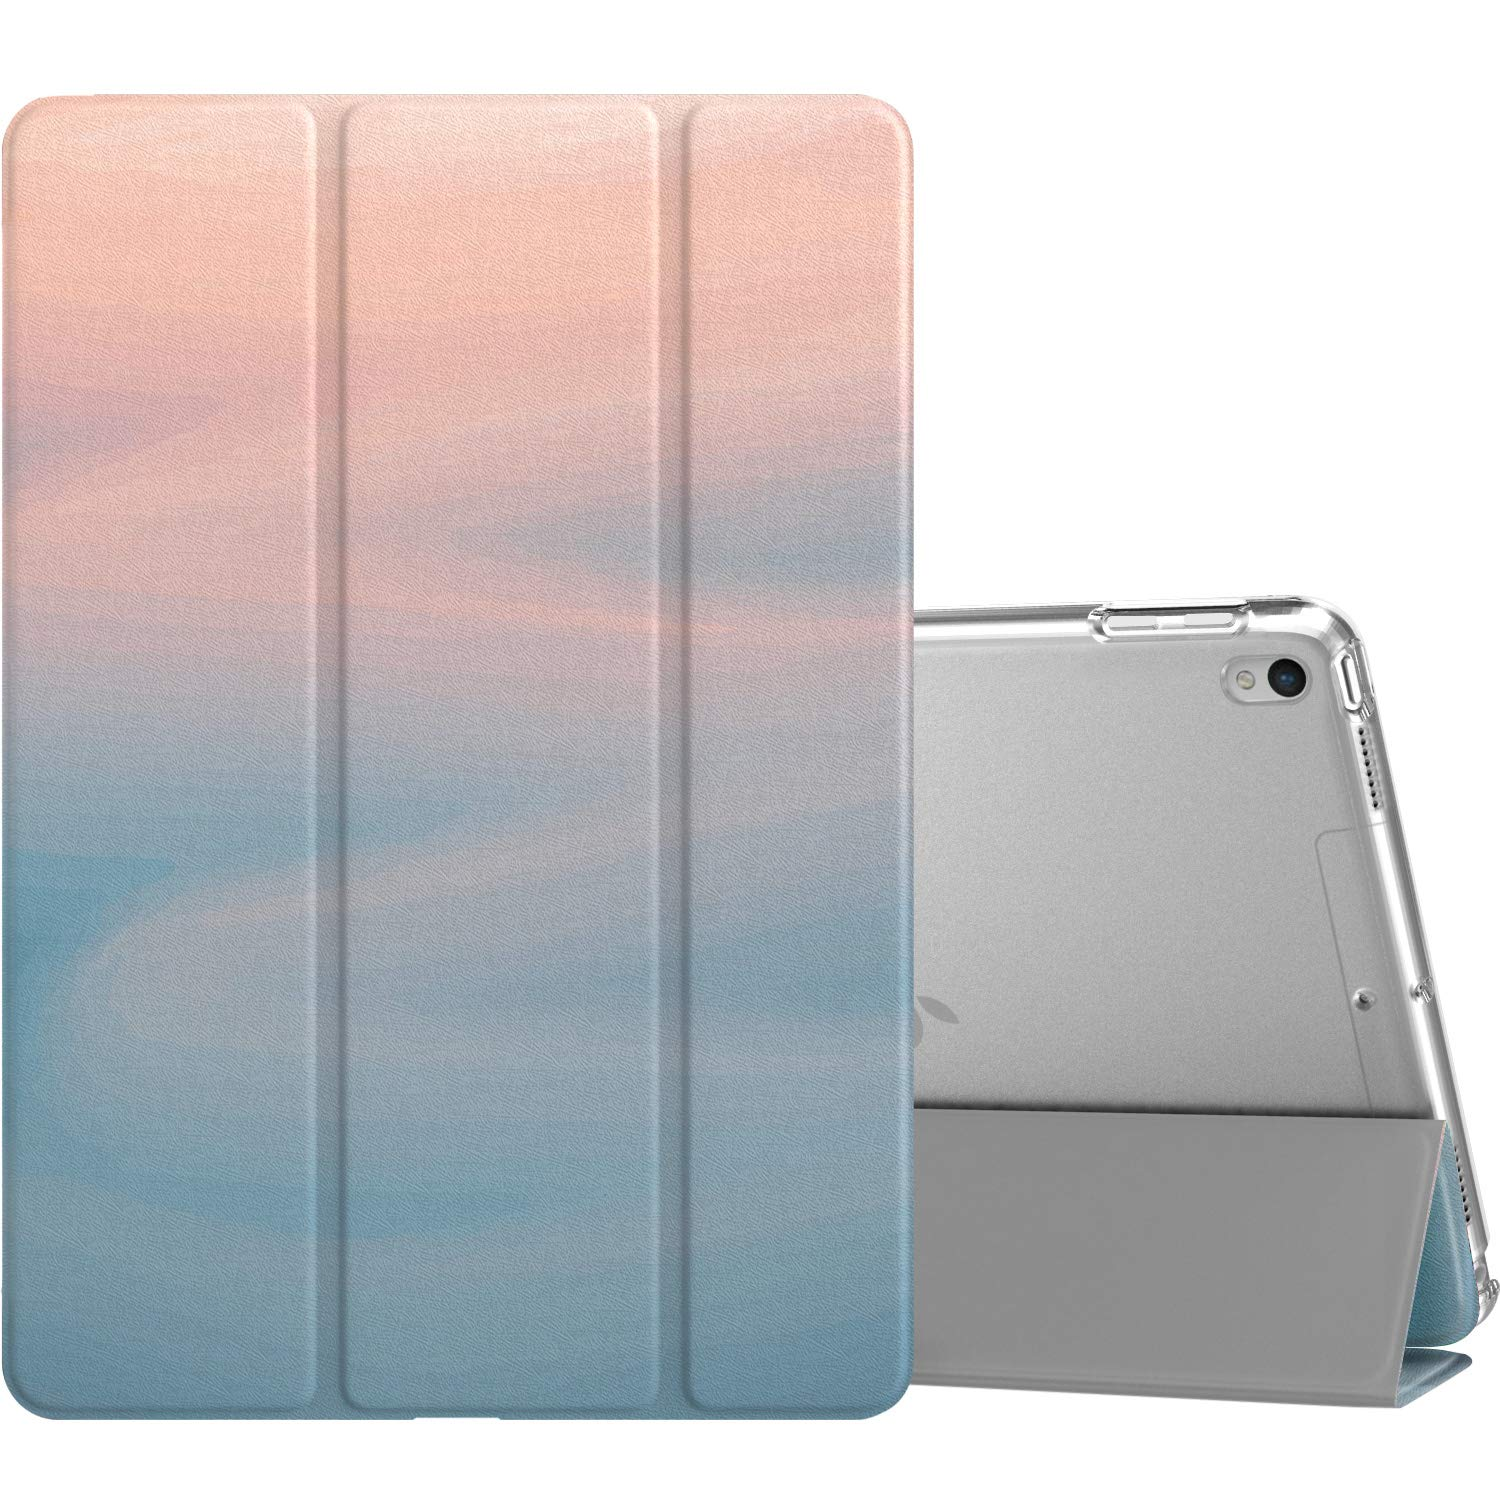 """MoKo Case Fit New iPad Air (3rd Generation) 10.5"""" 2019/iPad Pro 10.5 2017, Slim Lightweight Smart Shell Stand Cover with Translucent Frosted Back Protector, with Auto Wake/Sleep - Fresh Blue"""